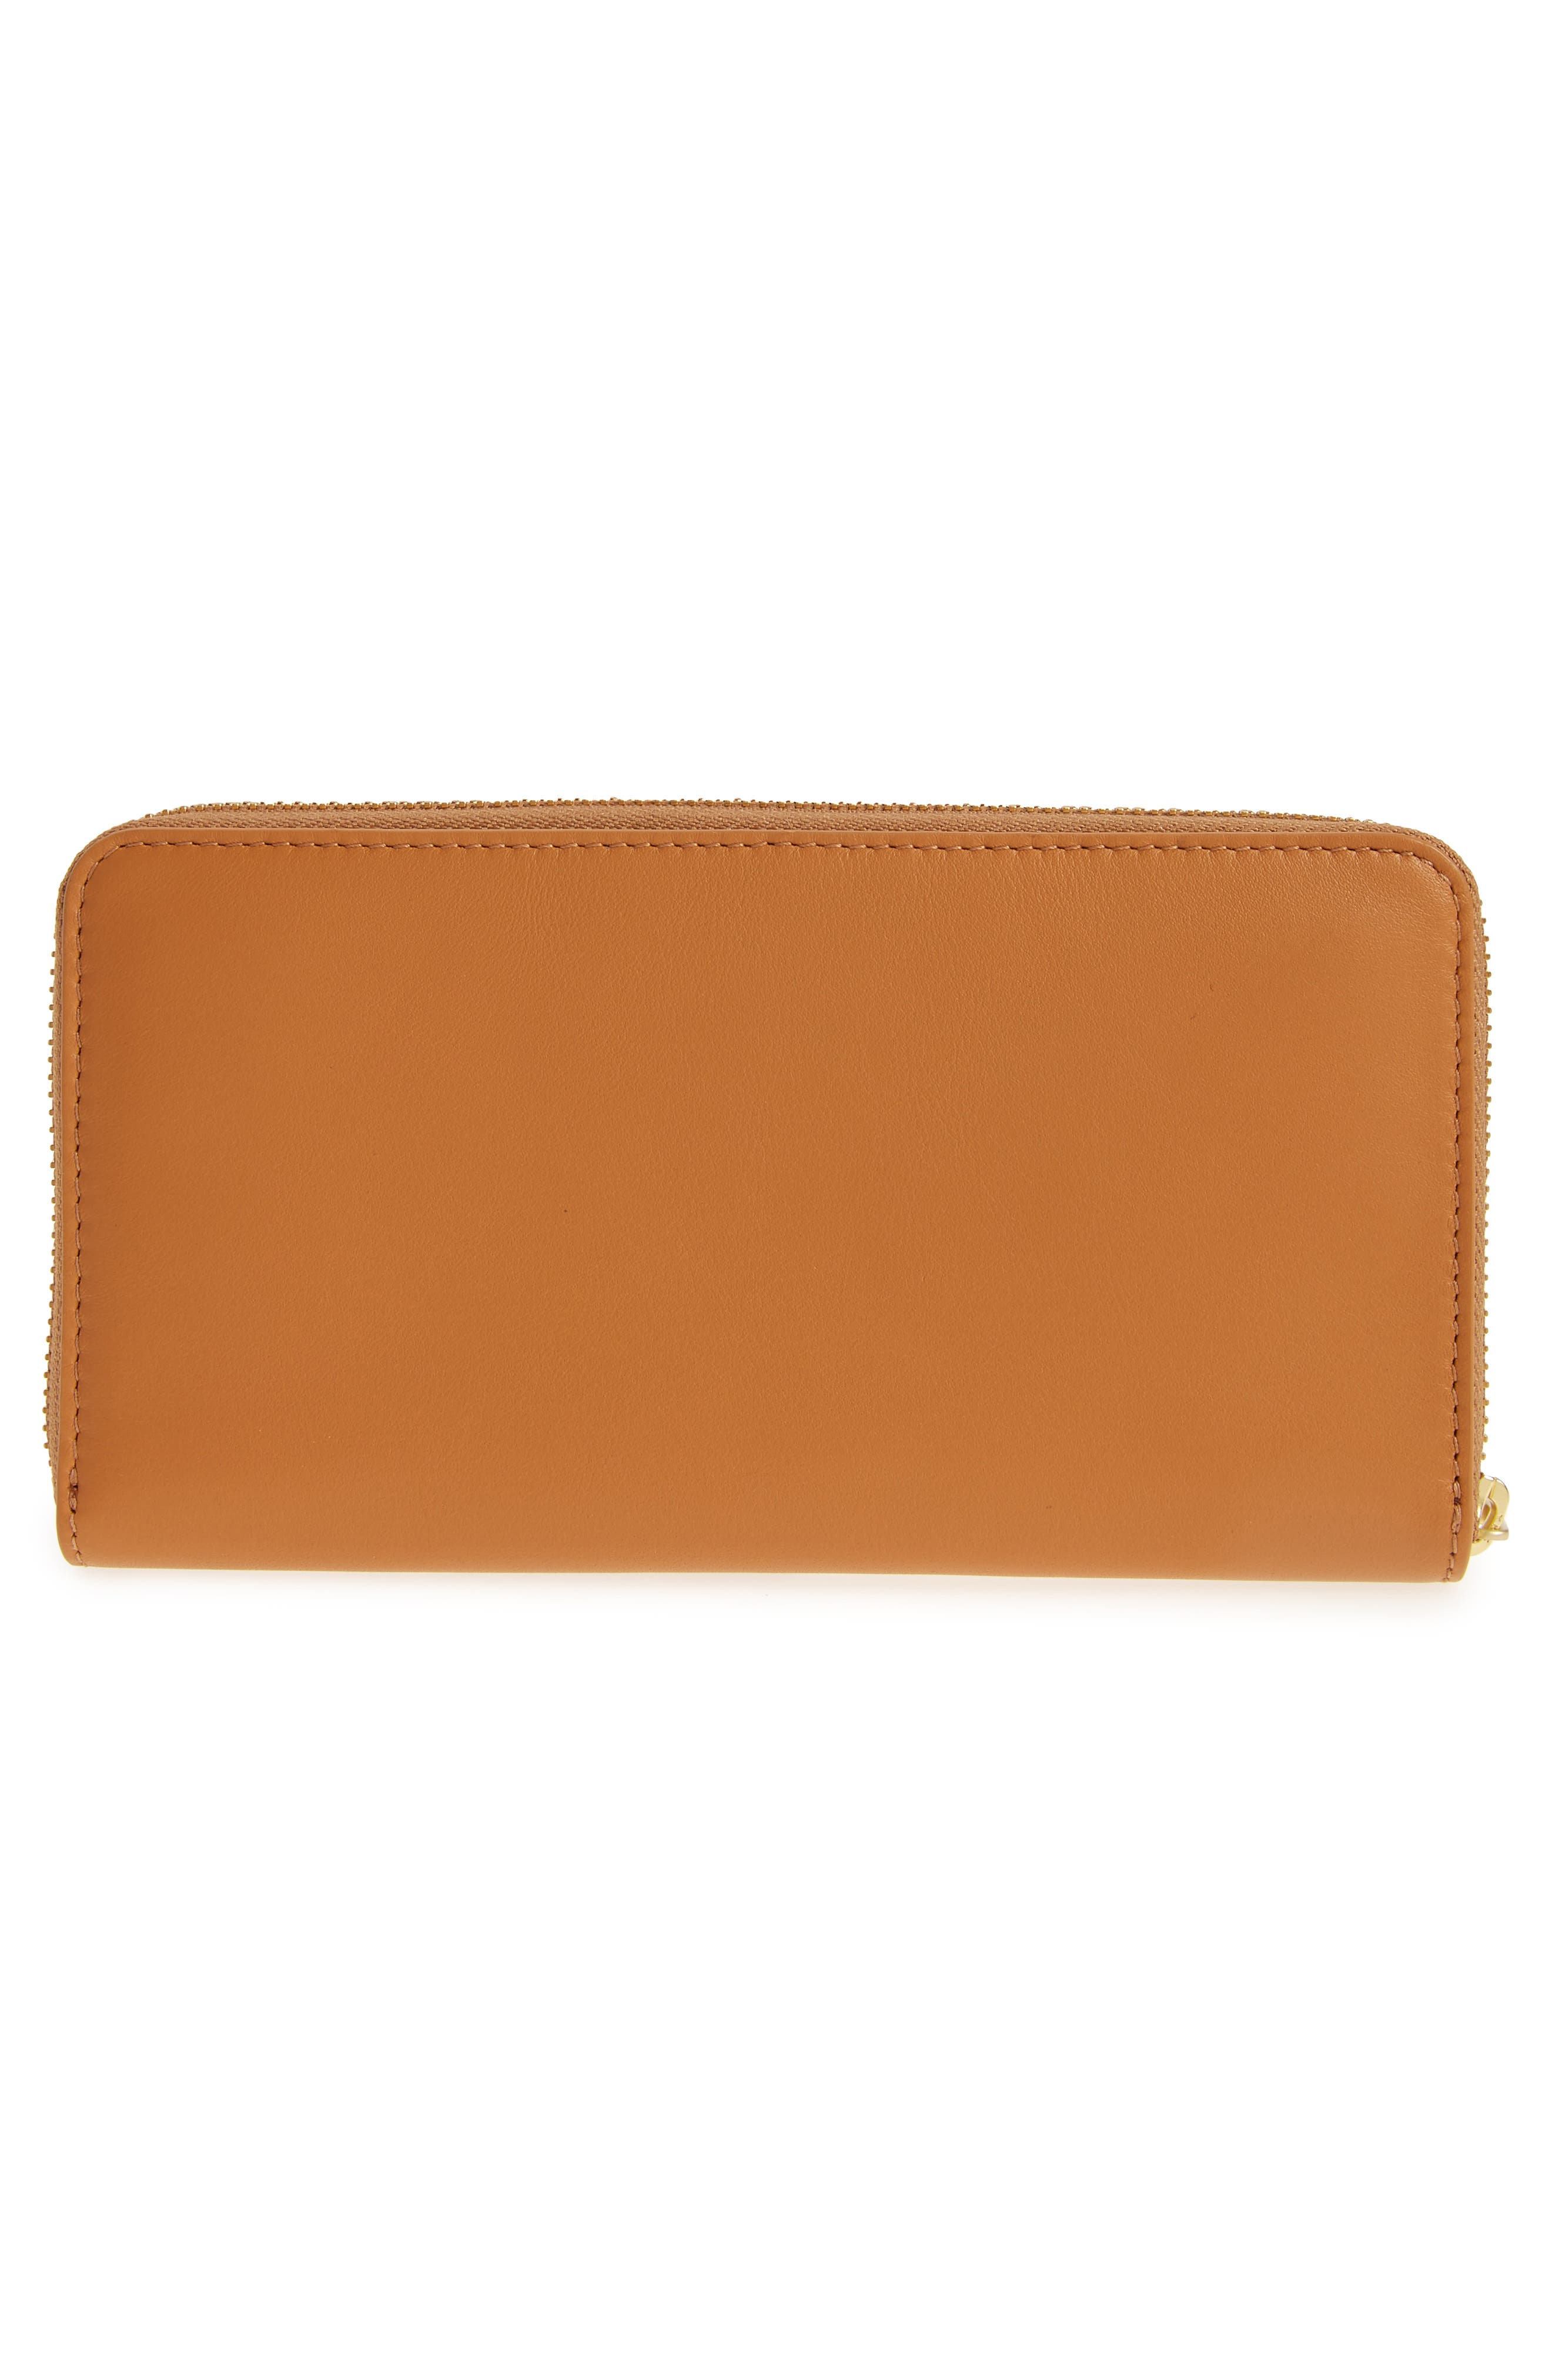 Leather Continental Wallet,                             Alternate thumbnail 3, color,                             Tan